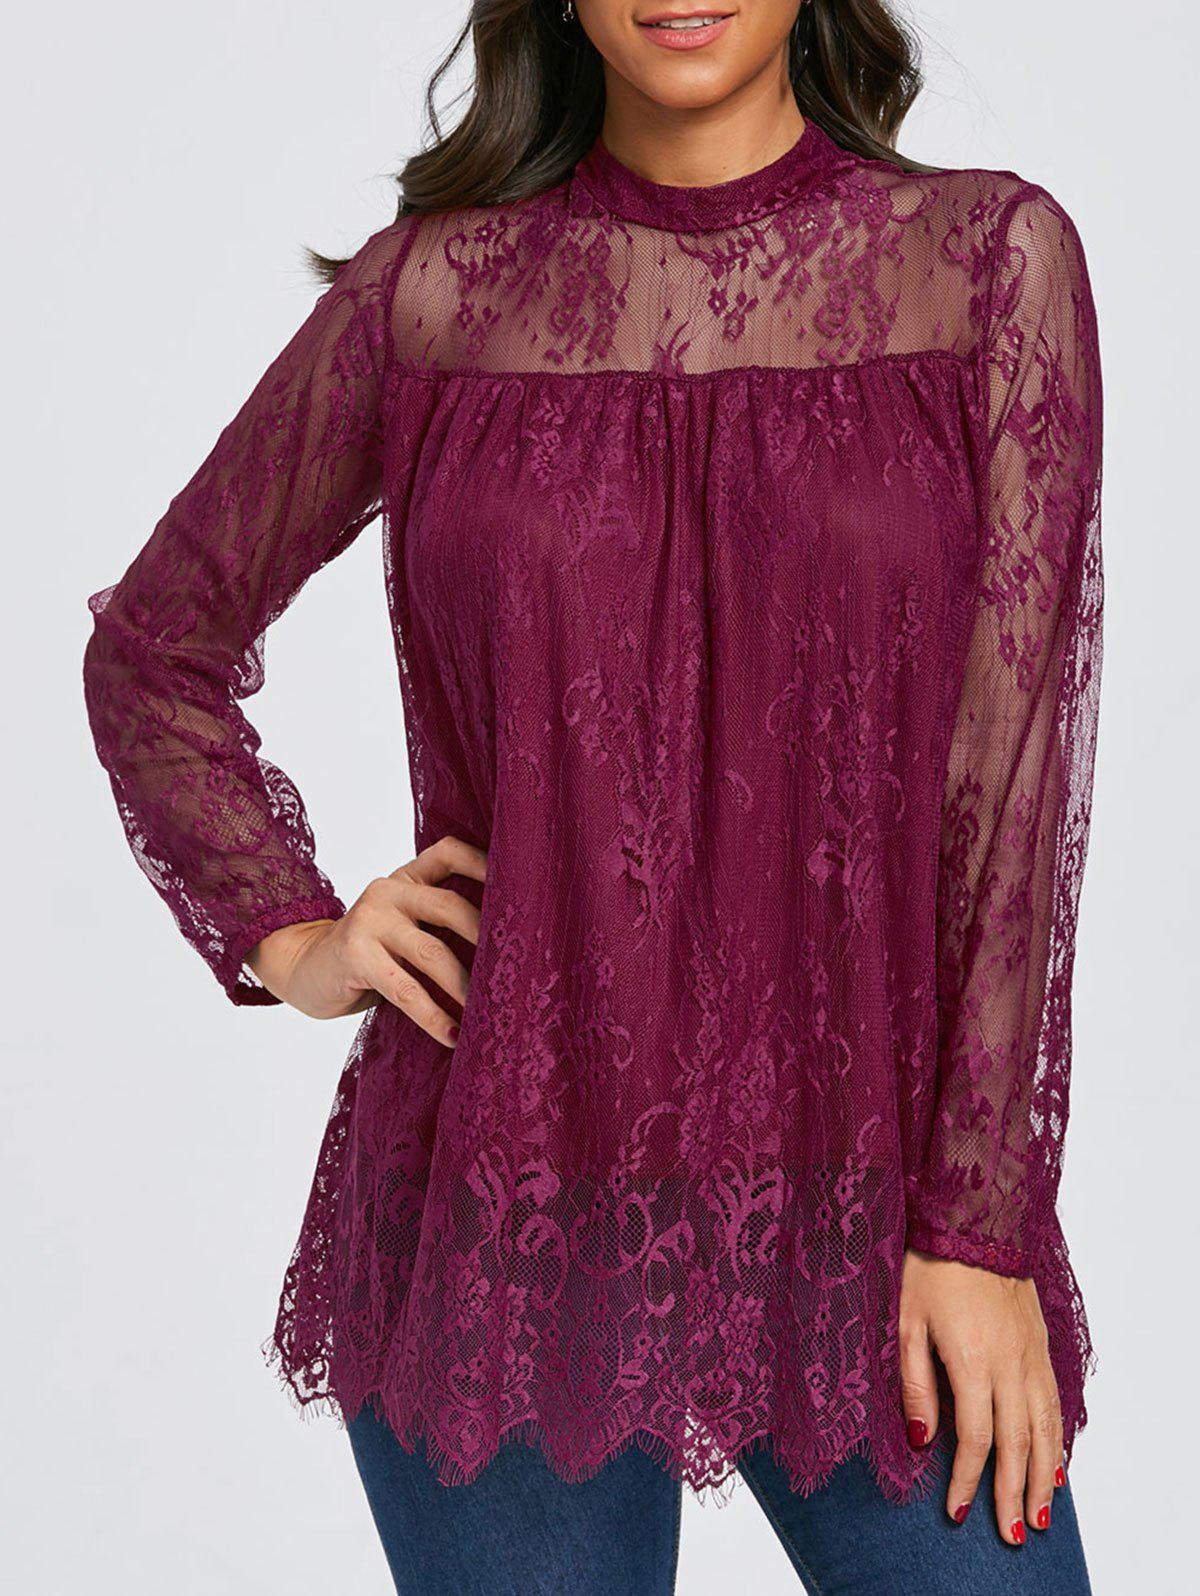 Fancy Mock Neck Sheer Lace Blouse